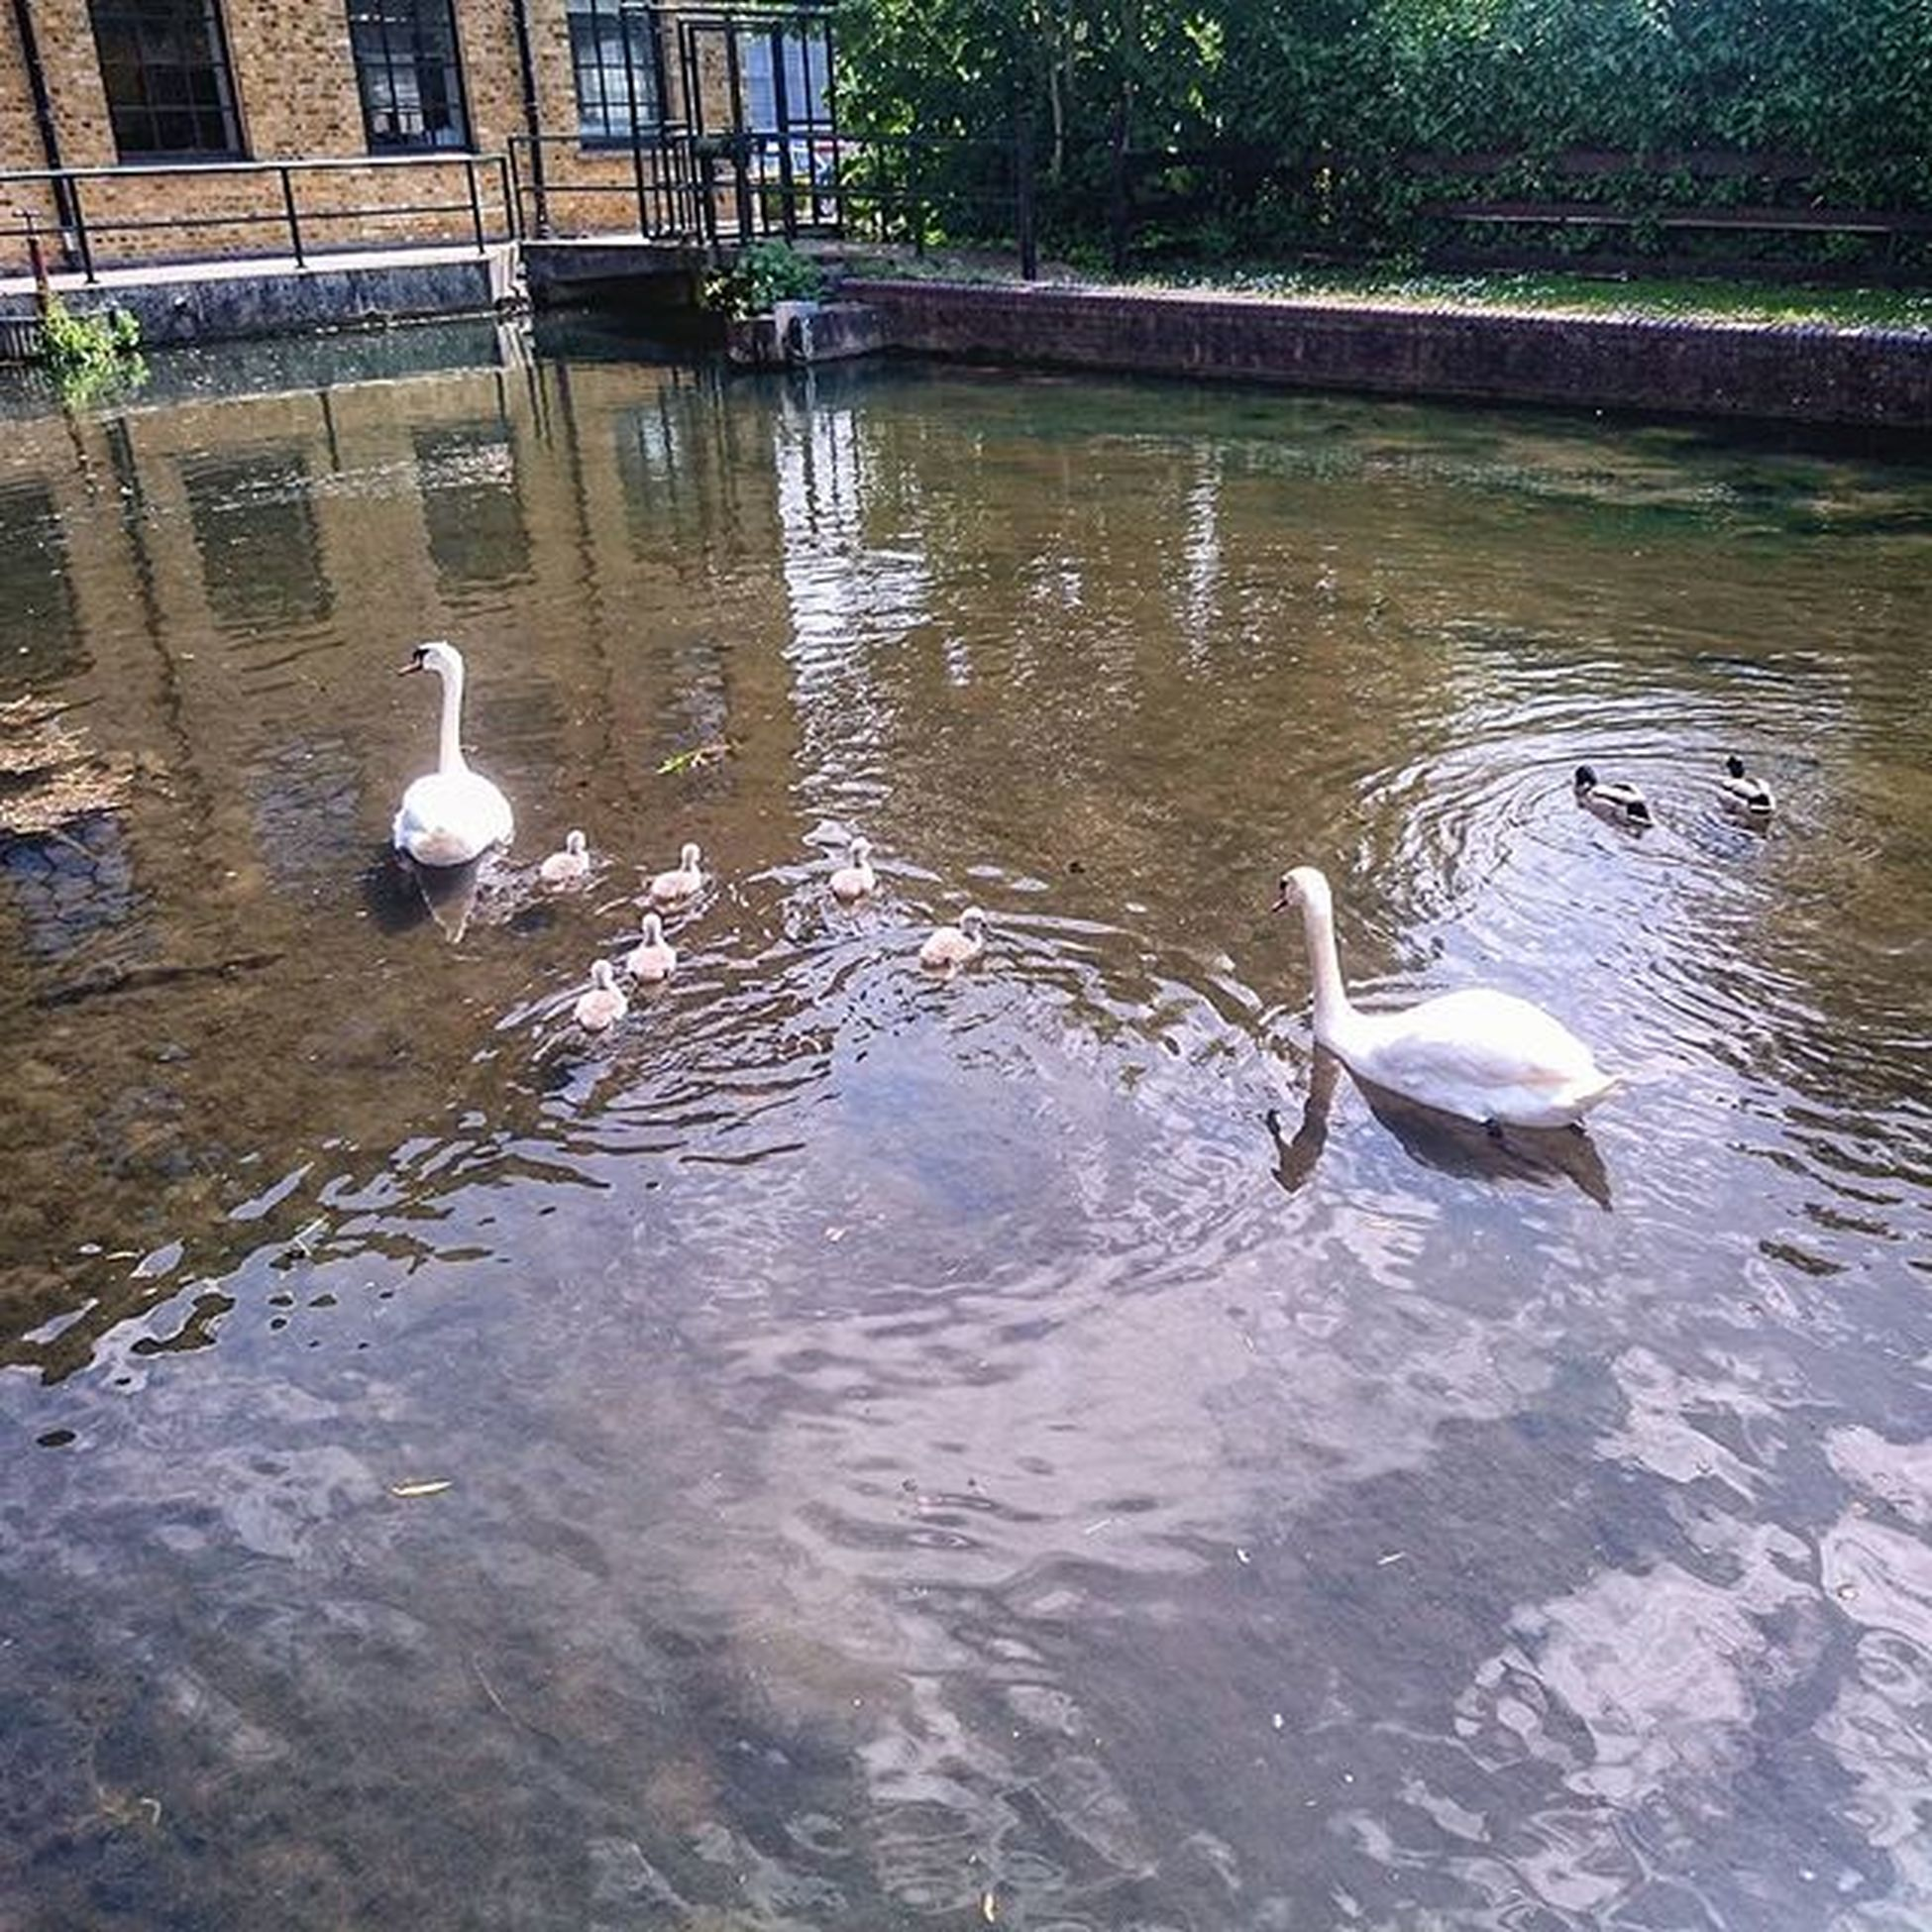 Then there were 6.. Swans Cygnets Nature Animals Birds Ware GSK Hertfordshire Canal Water Ducks ICAN XPERIA Sony Snapshot Capture